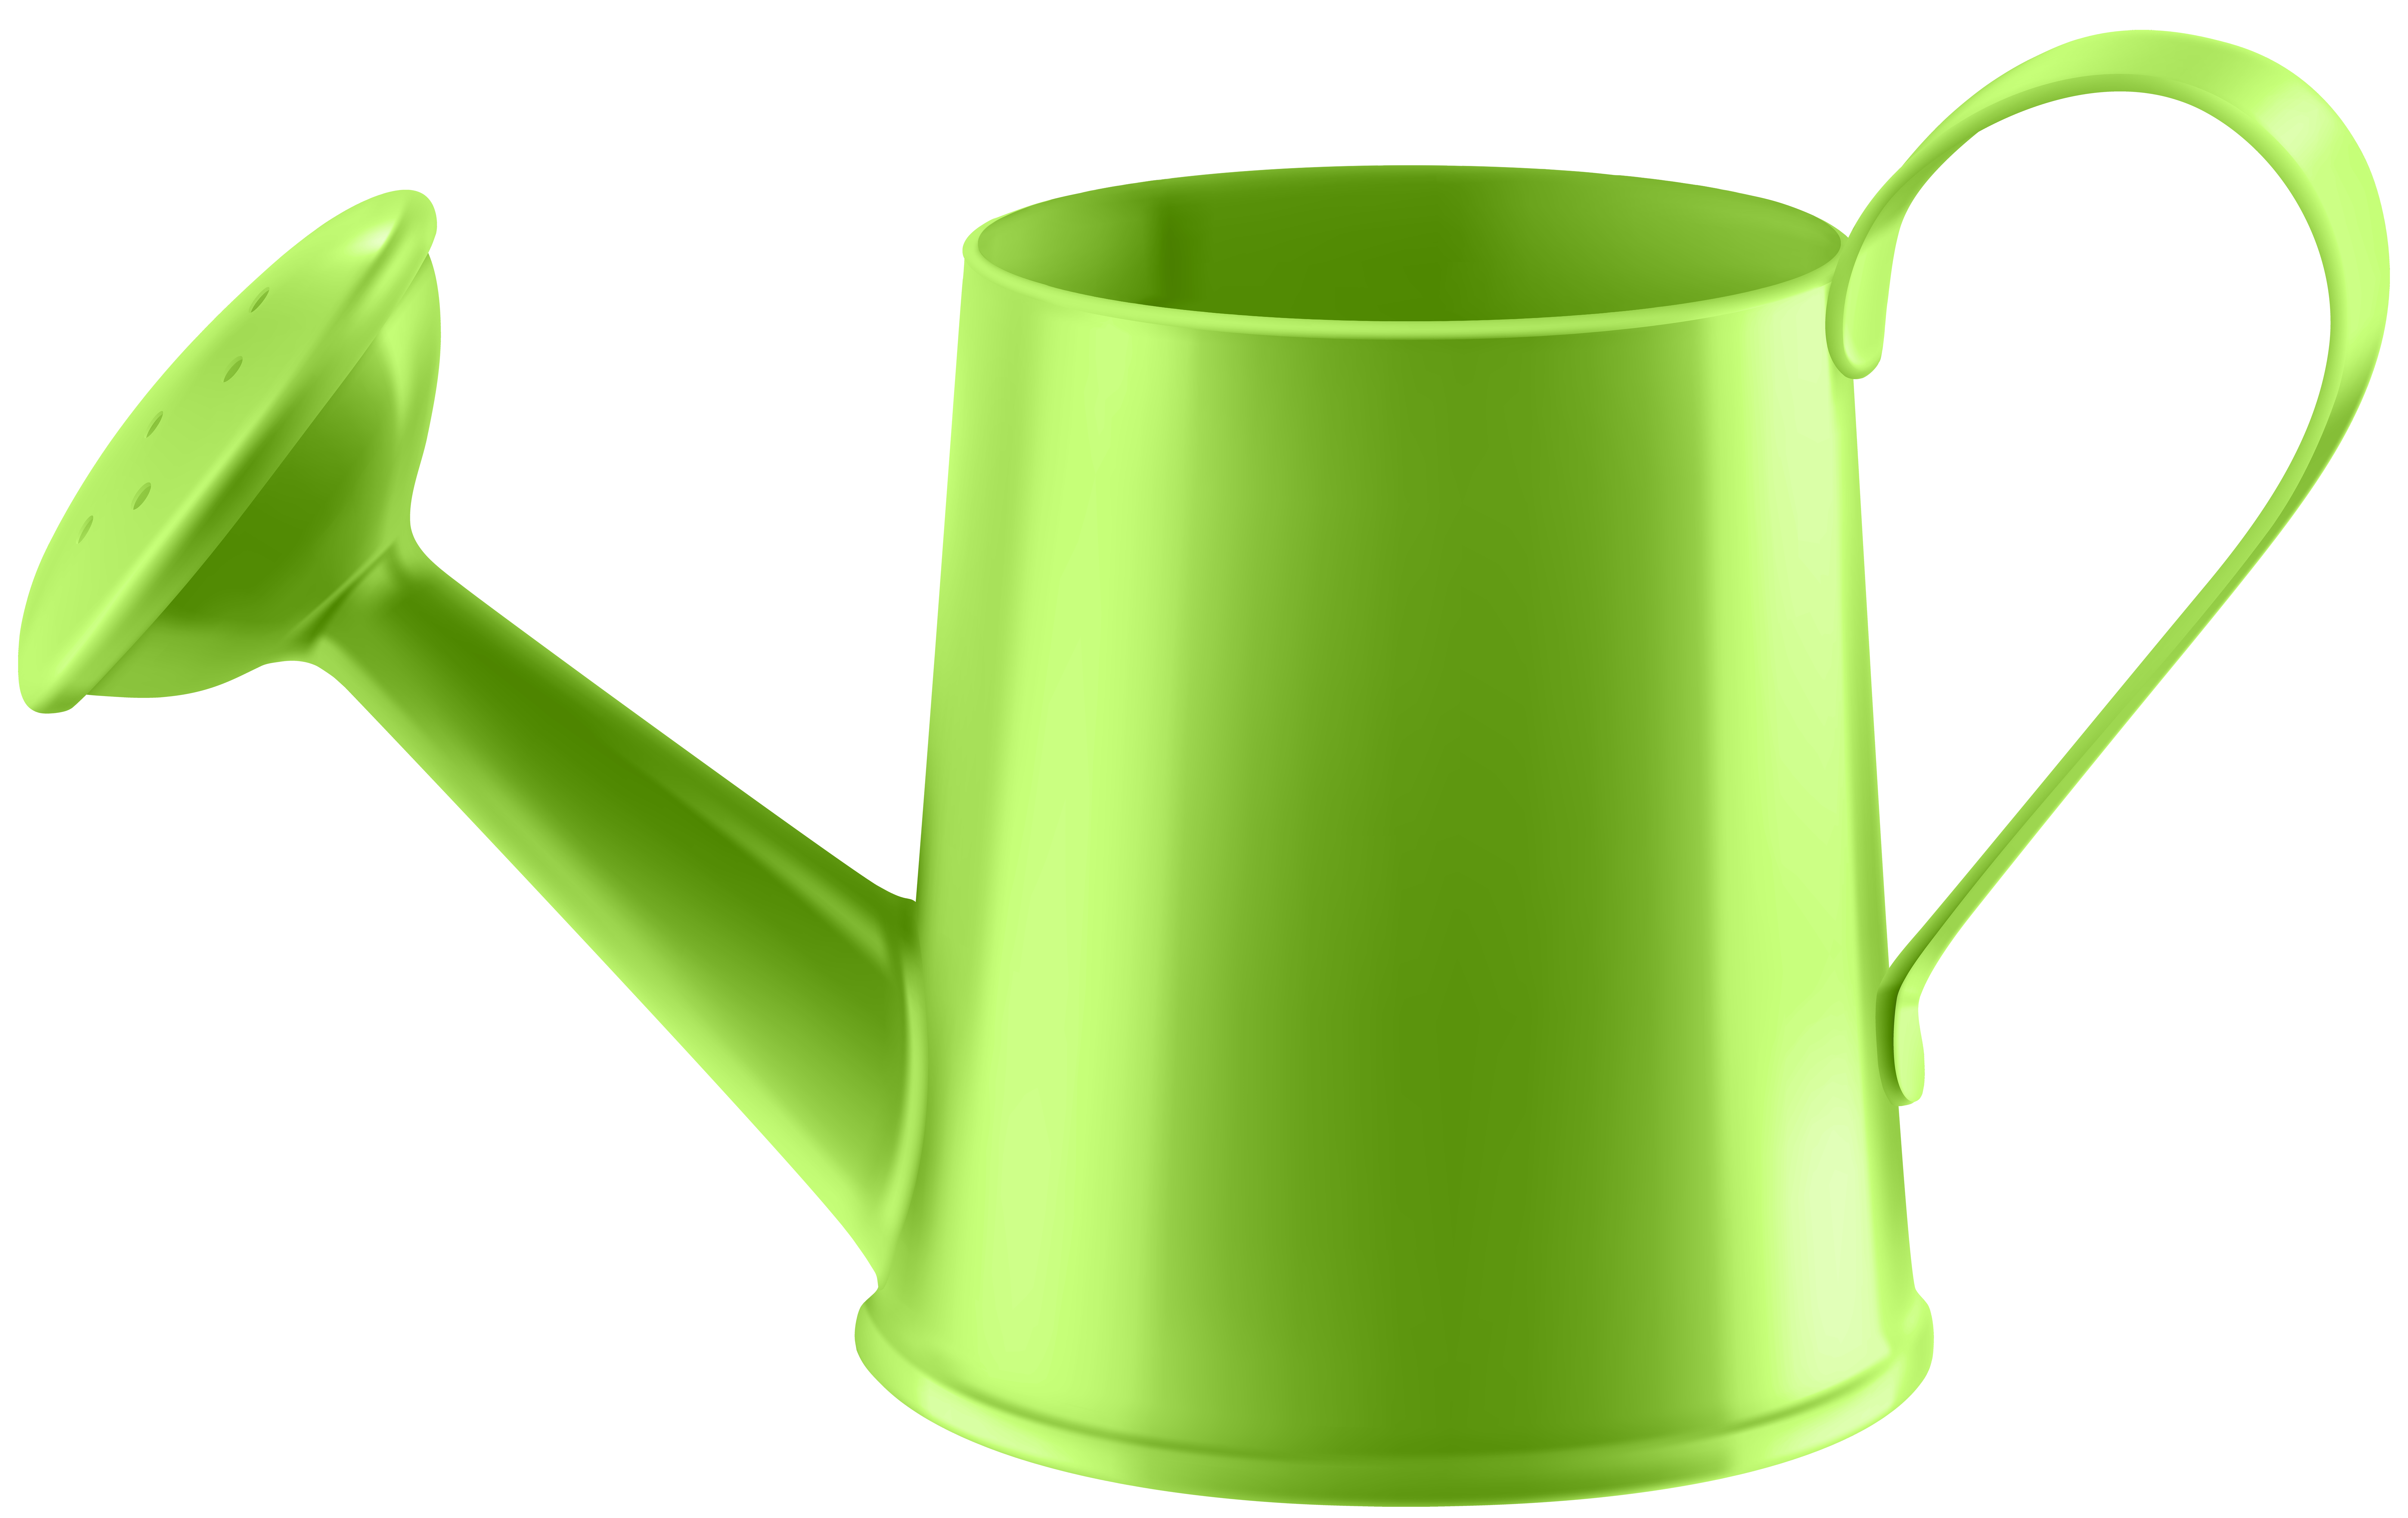 Green Water Can Transparent PNG Clip Art.